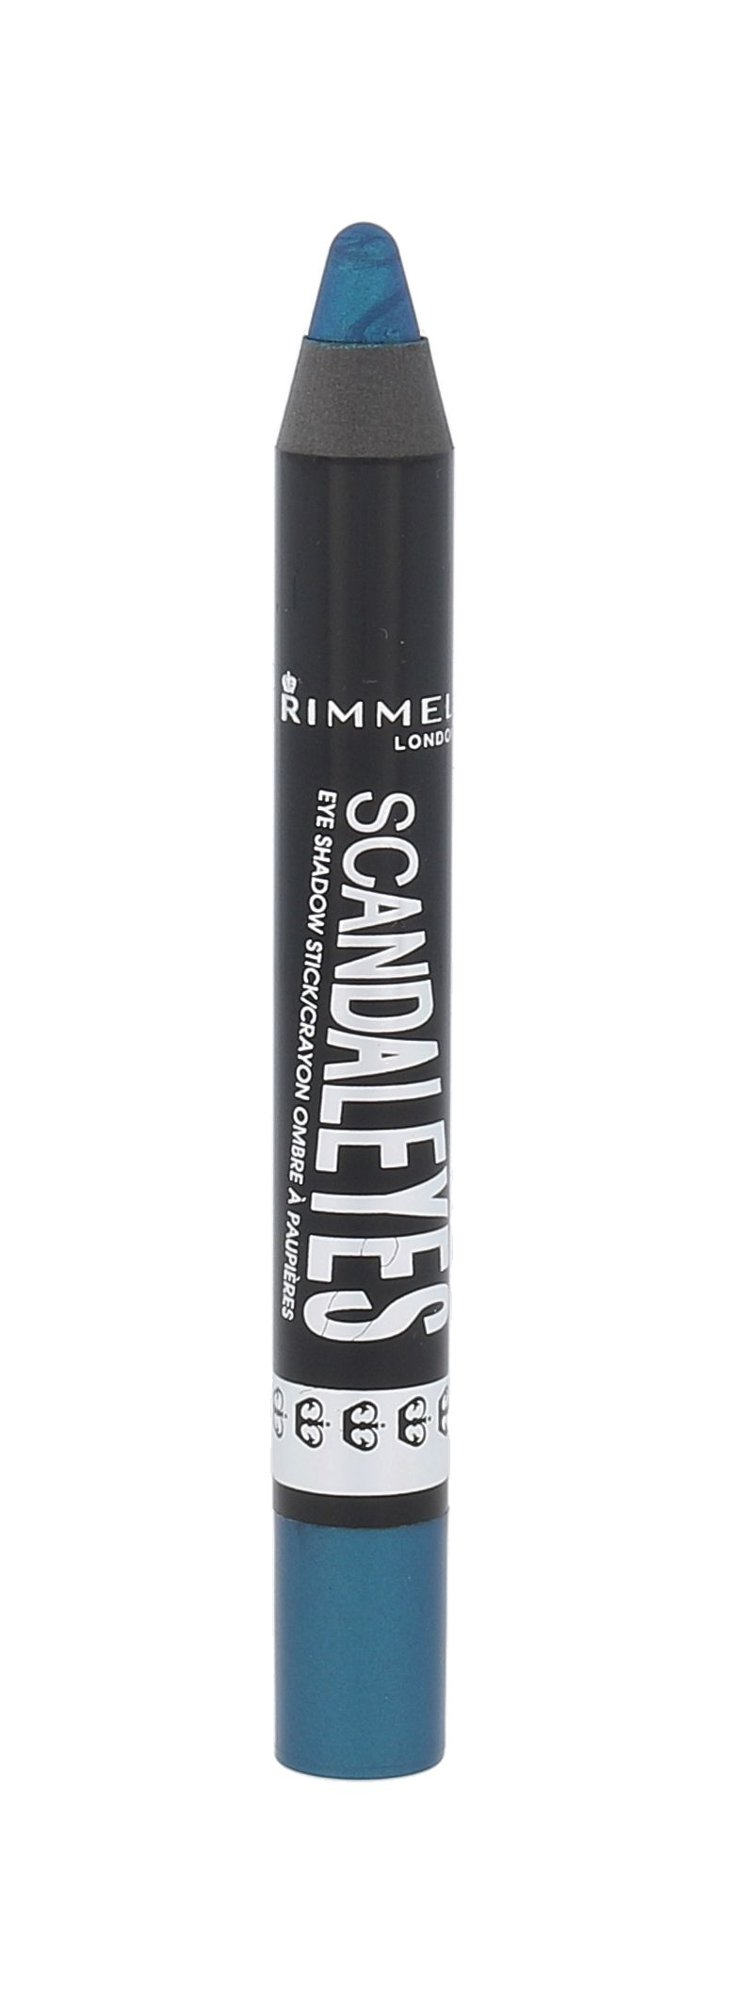 Rimmel London Scandal Eyes Cosmetic 3,25ml 009 Blamed Blue